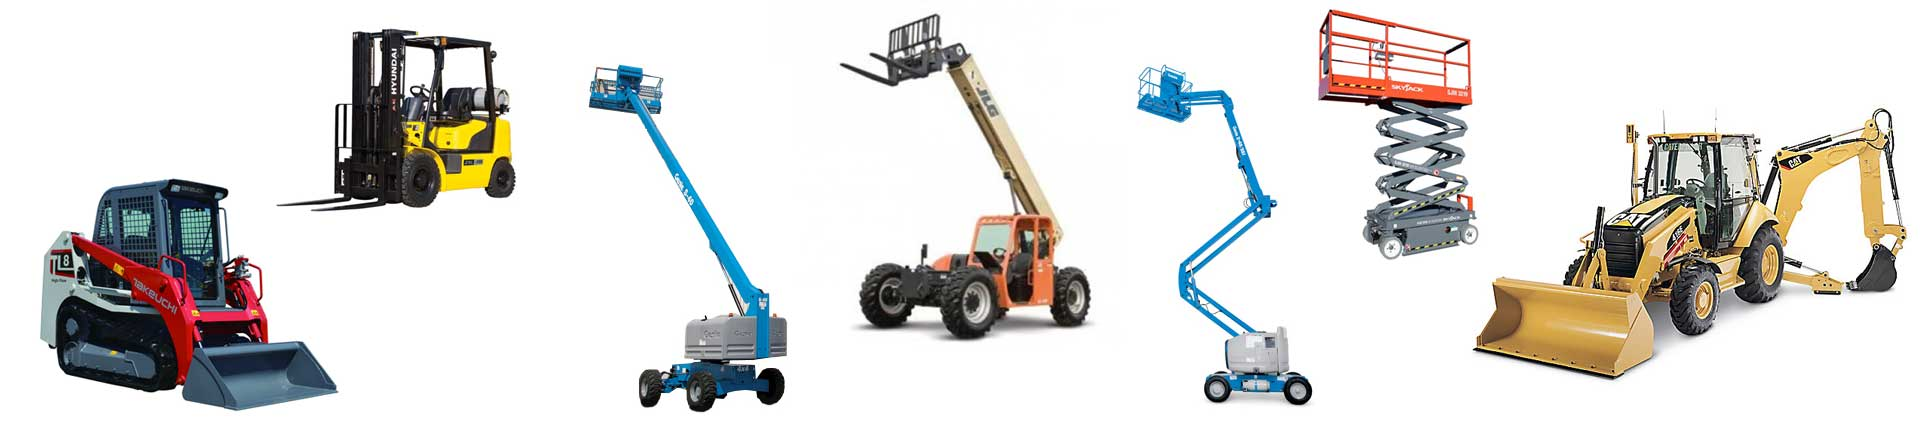 Equipment rentals in Marshall County & Northern Alabama